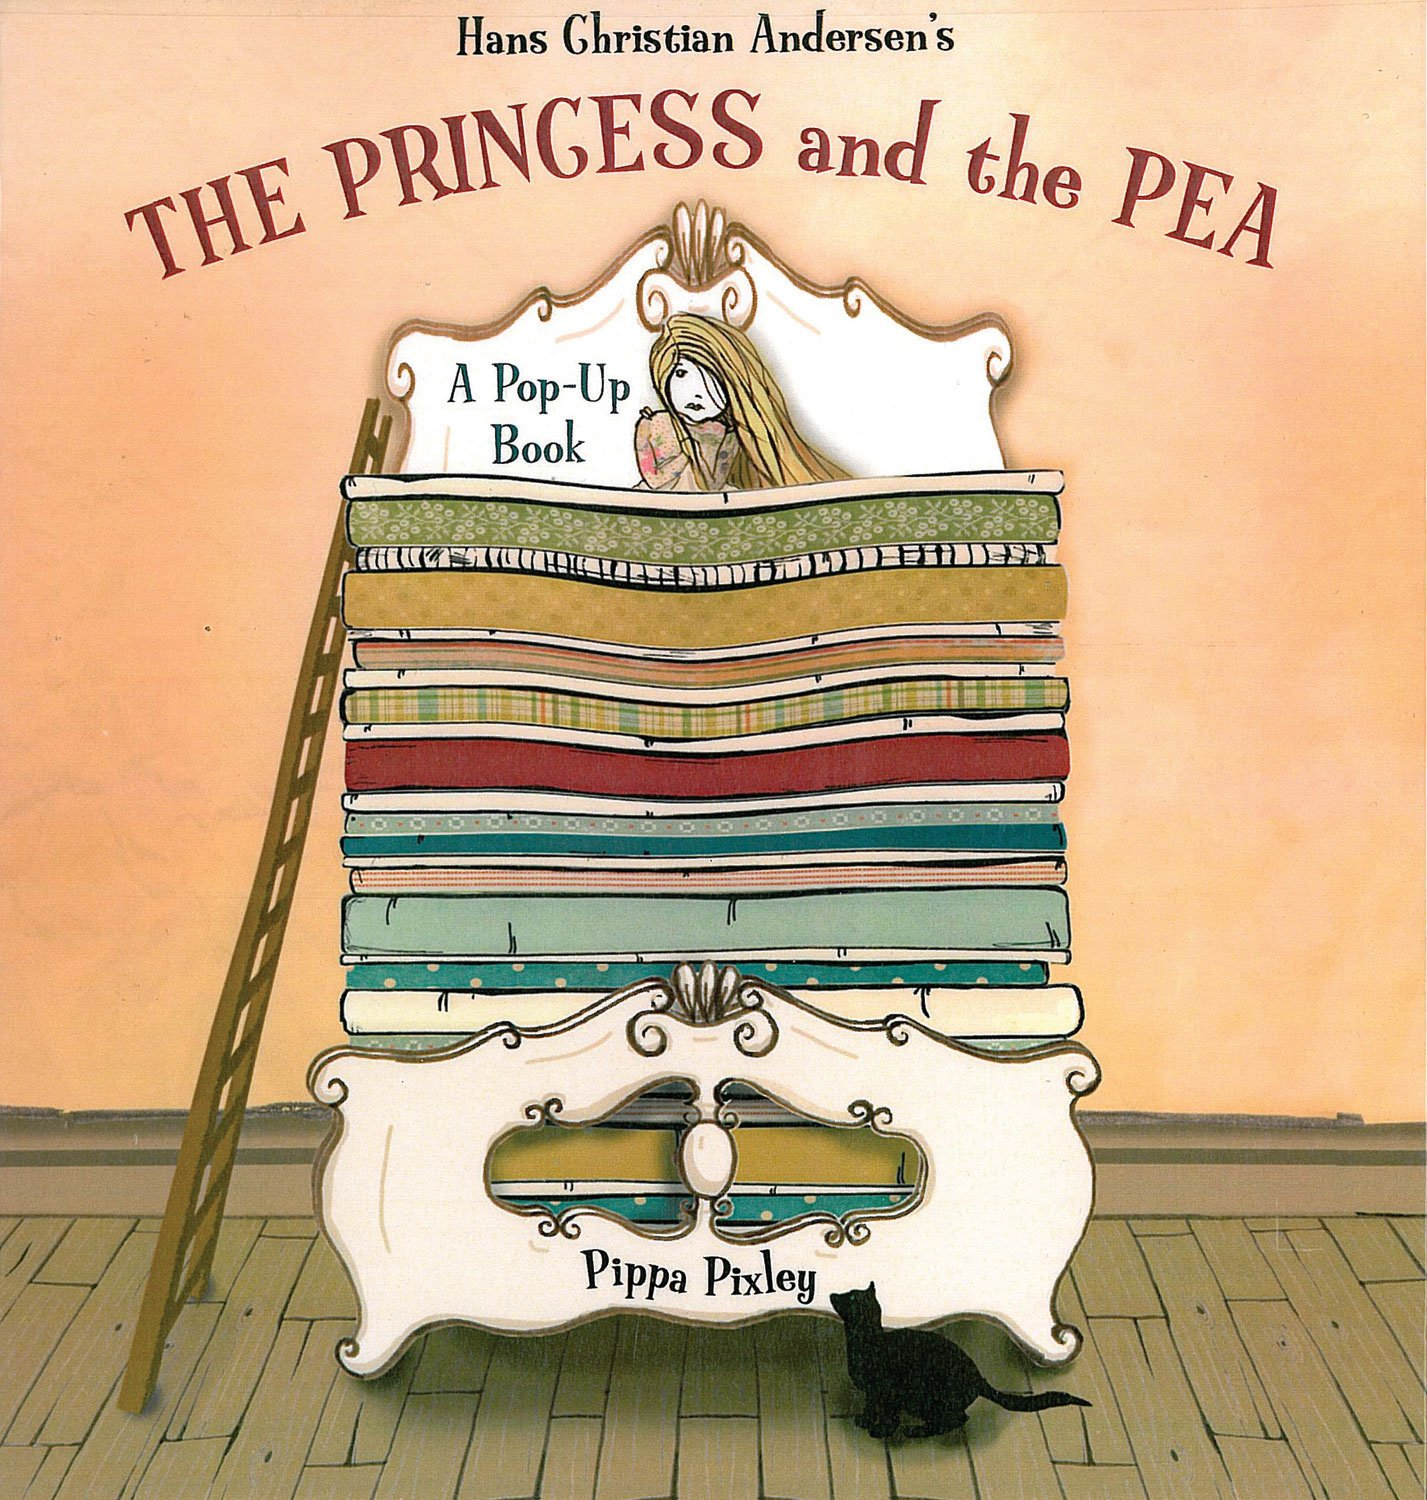 princess and the pea book. The Princess And Pea: A Pop-Up Book (Fairytale Pop-ups): Hans Christian Andersen, Pippa Pixley: 9781857078169: Amazon.com: Books Pea